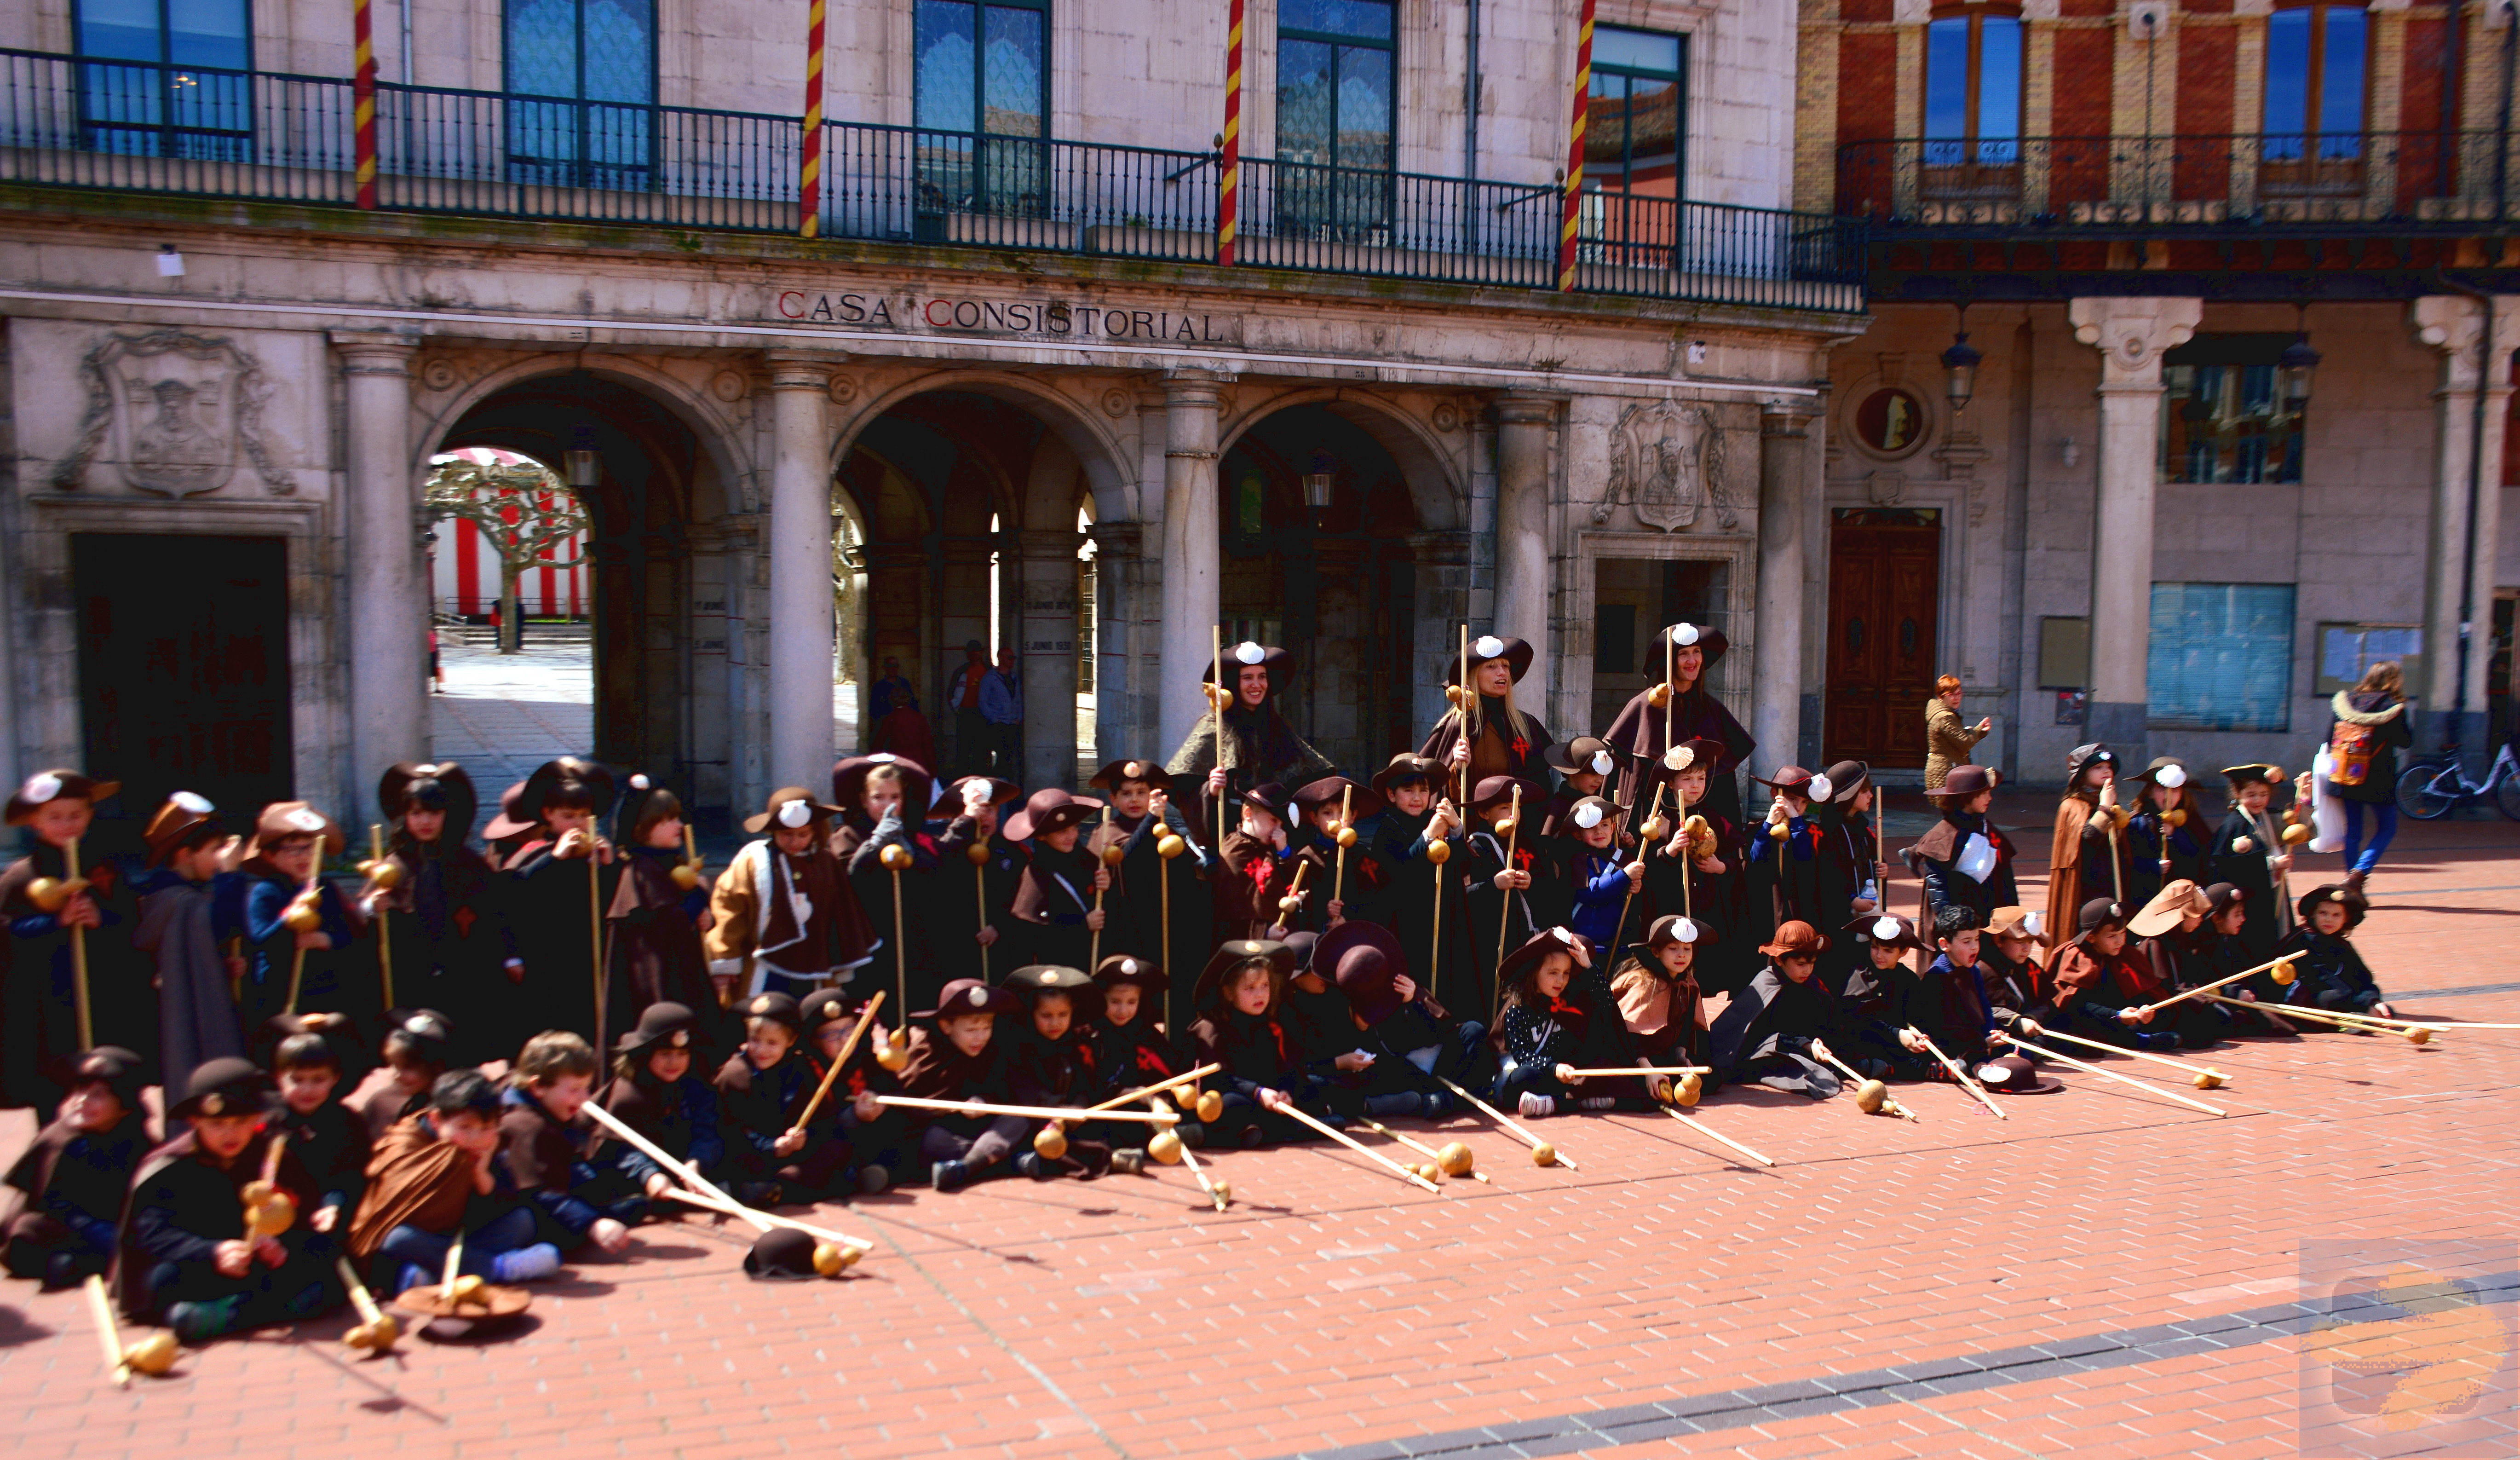 A Burgos encounter - a school of little Peregrinos!